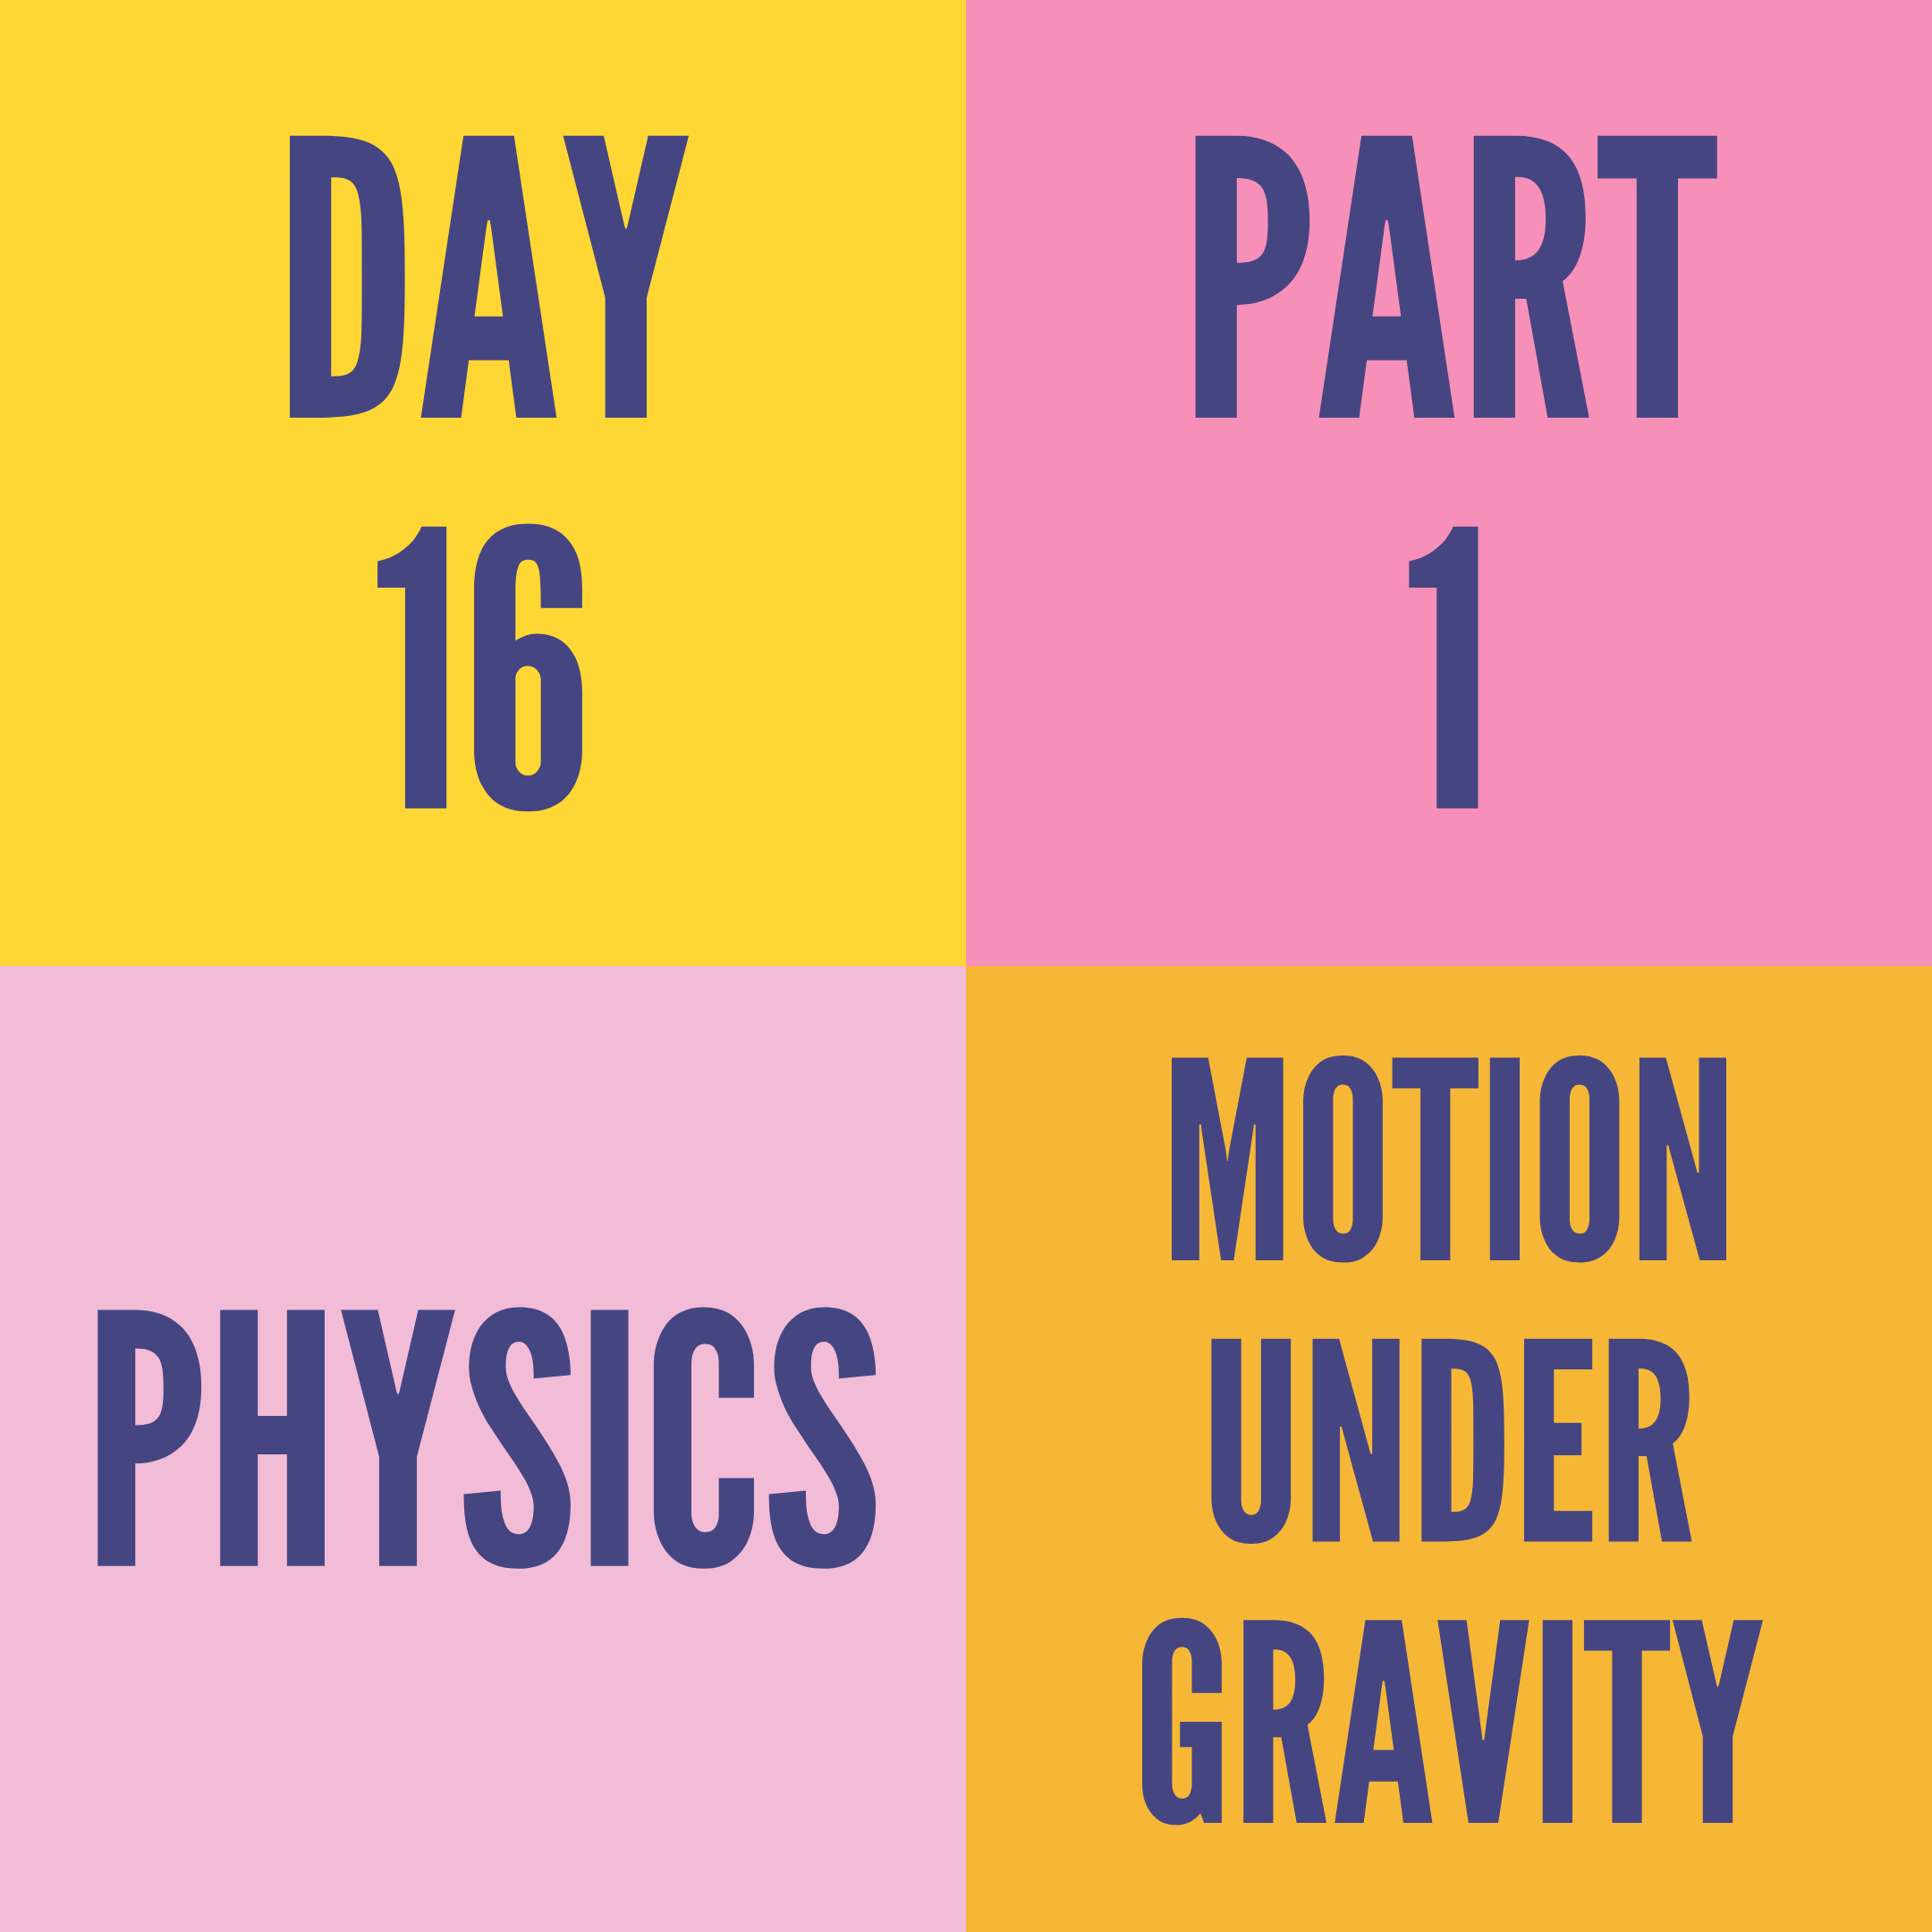 DAY-16 PART-1 MOTION UNDER GRAVITY